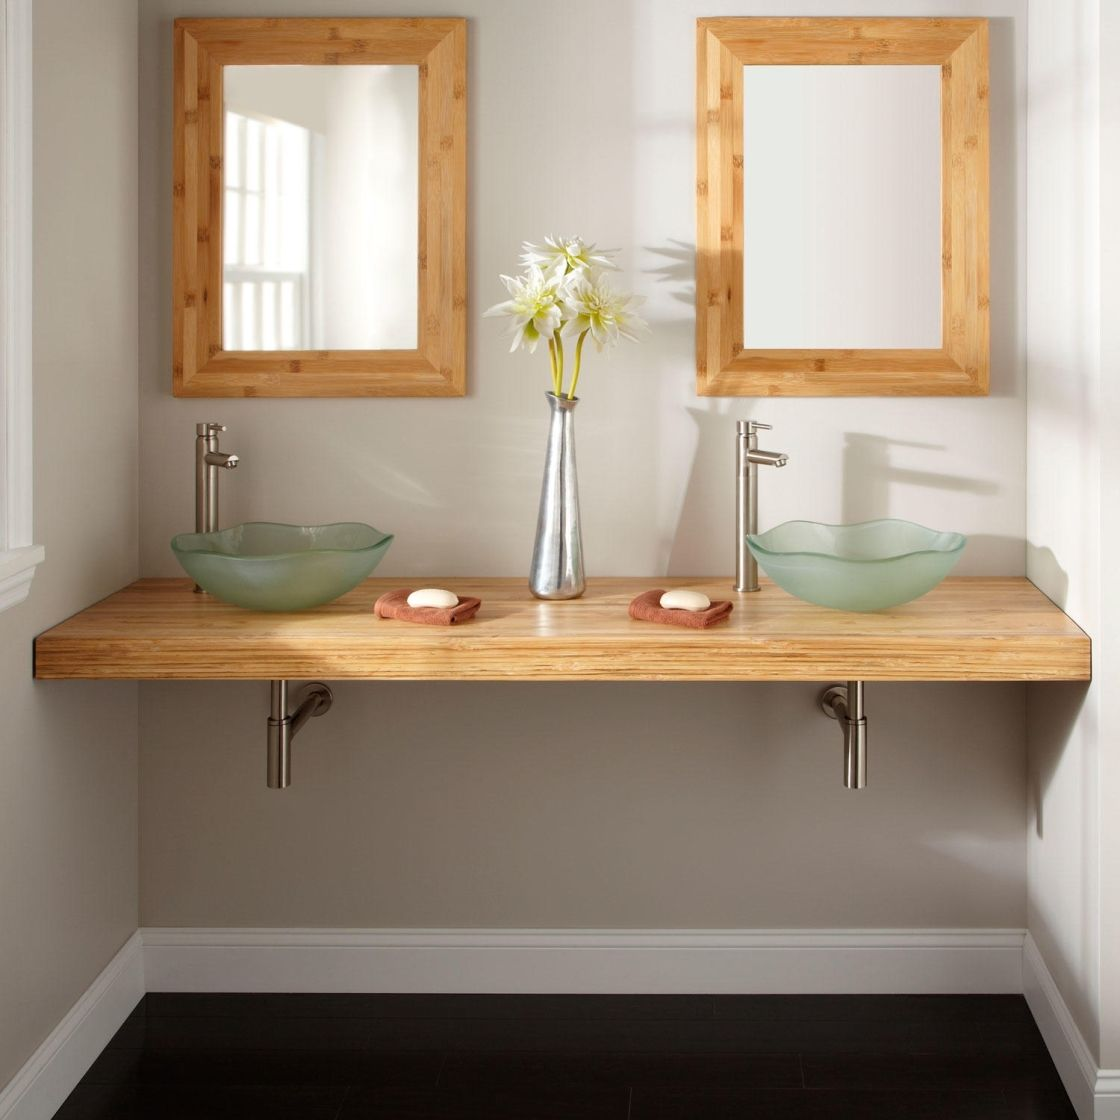 Custom Bathroom Vanities Designs diy custom floating bathroom vanity design in solid natural bamboo